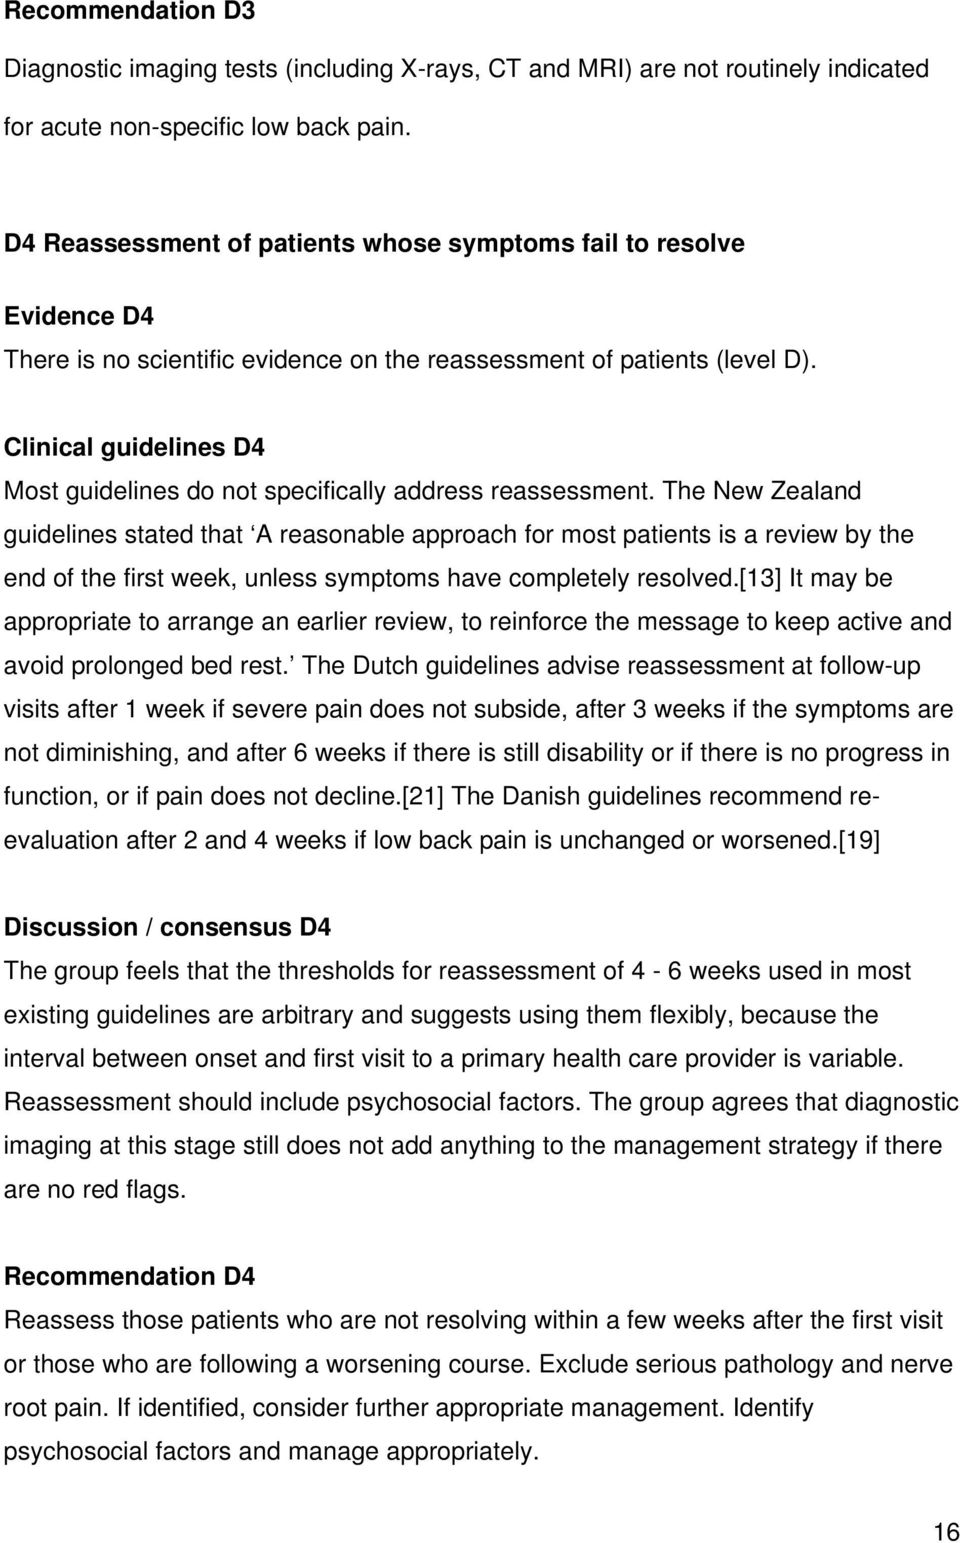 Clinical guidelines D4 Most guidelines do not specifically address reassessment.